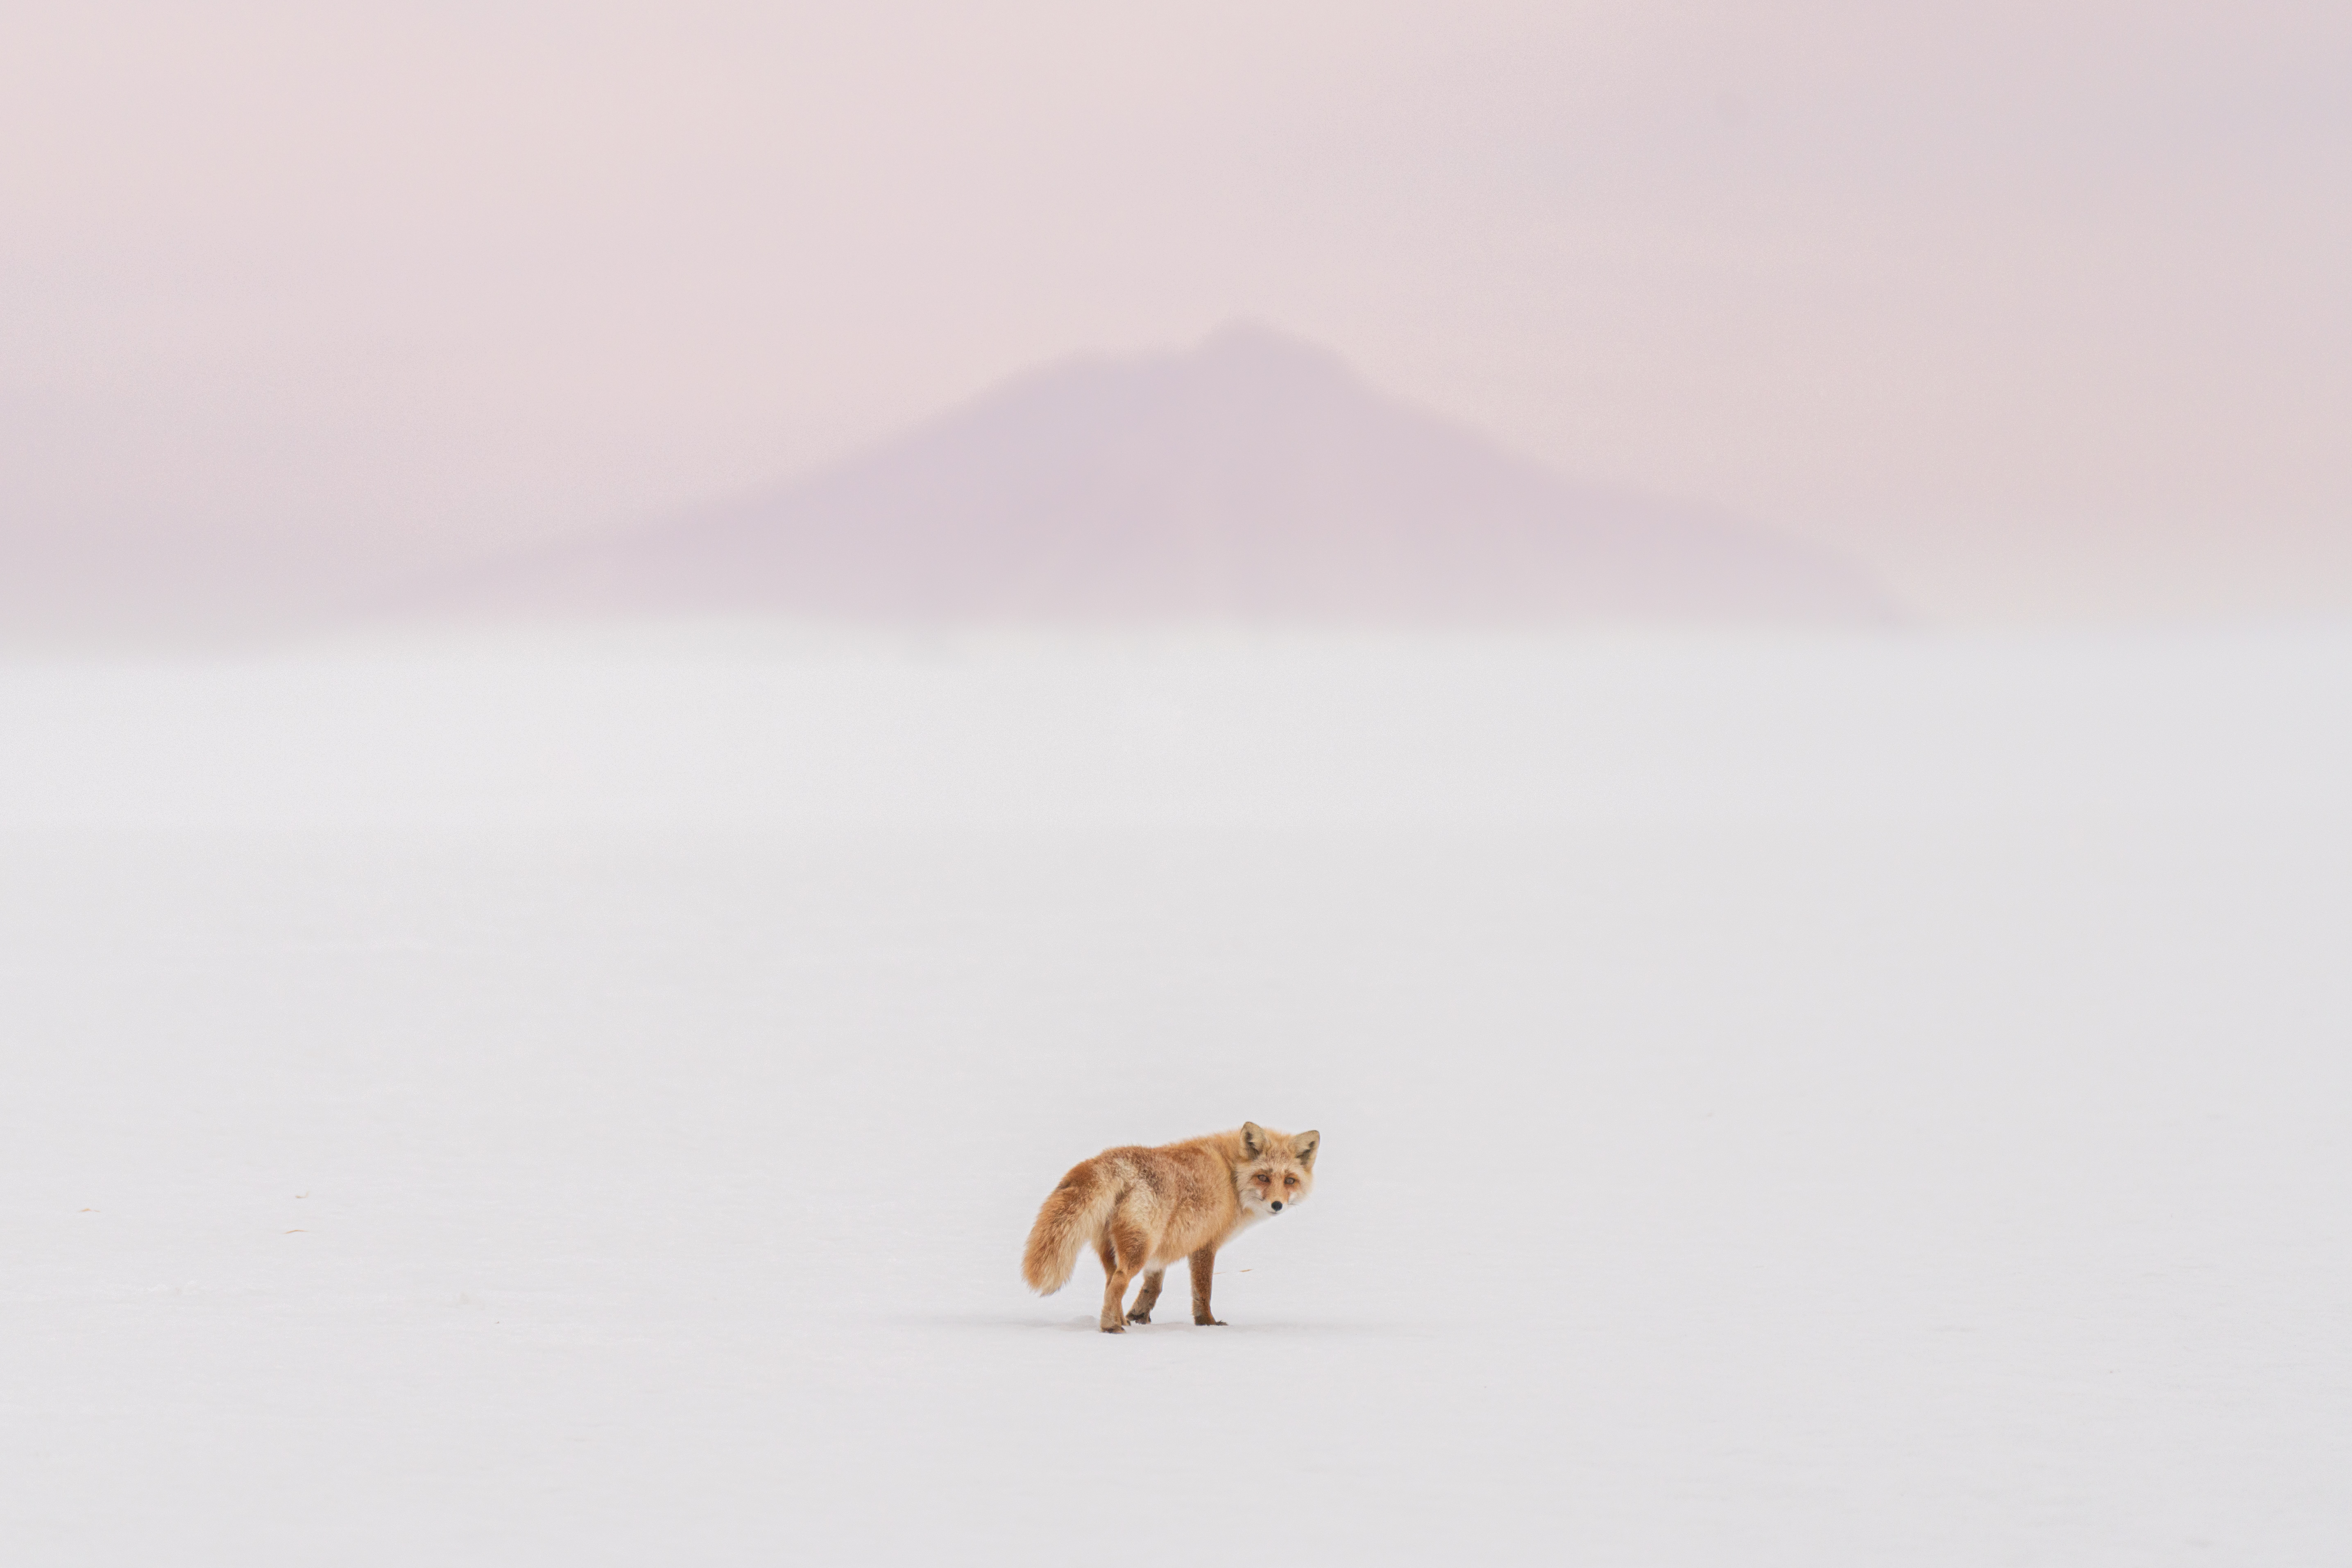 © Yuta Doto, Japan, entry, Open competition, Natural World & Wildlife, 2021 Sony World Photography Awards